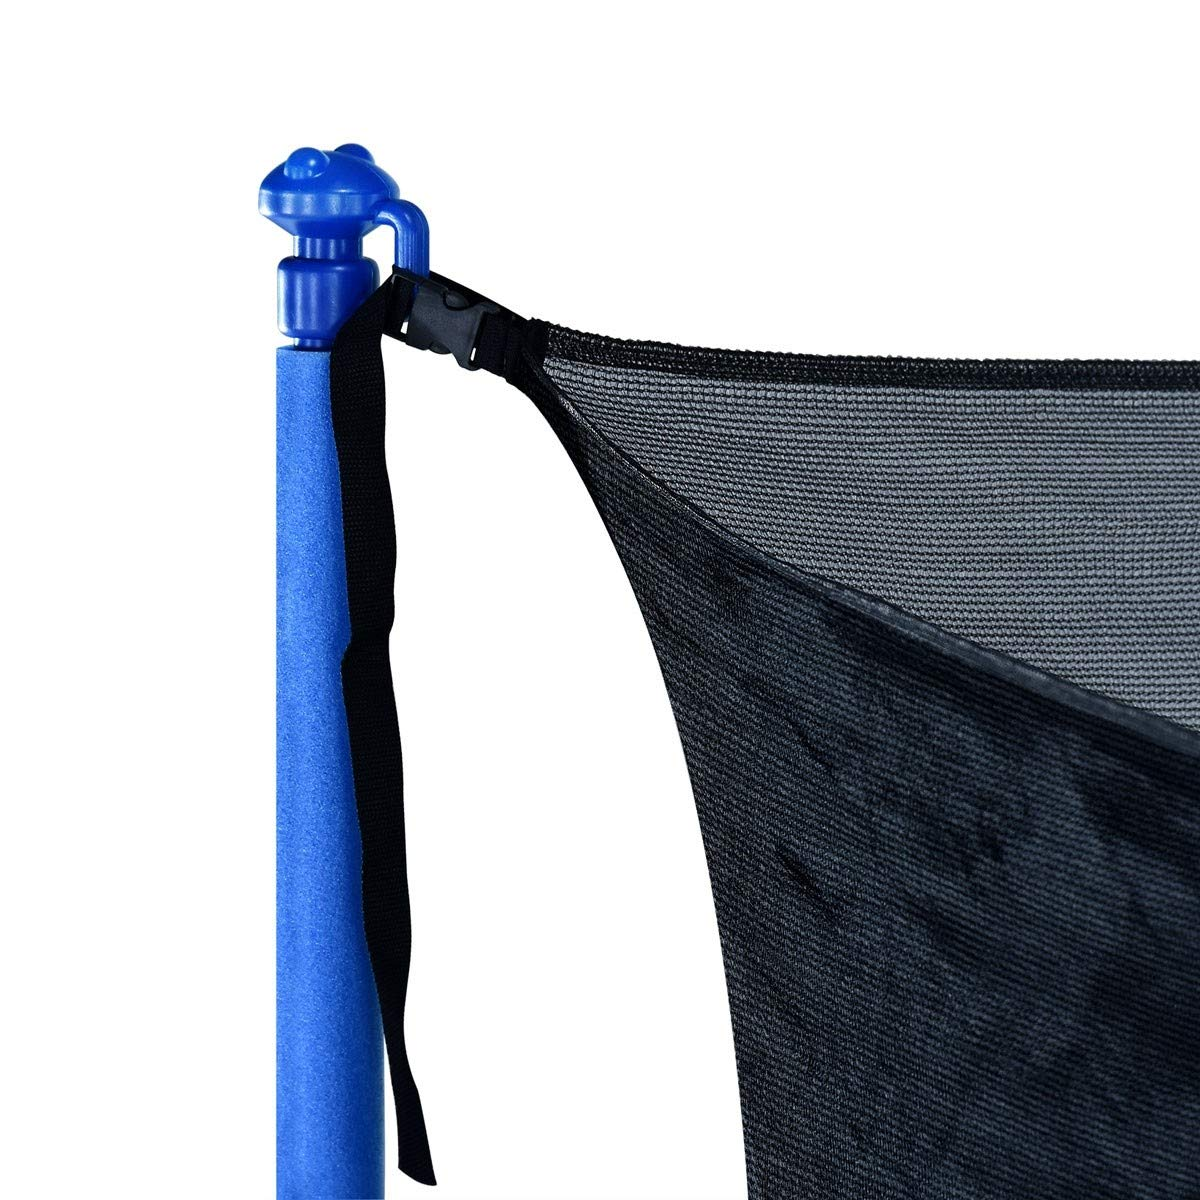 Zupapa 15FT 14FT 12FT 10FT Trampoline Inside-Enclosure net Replacement Black Mesh (12FT) by Zupapa (Image #2)